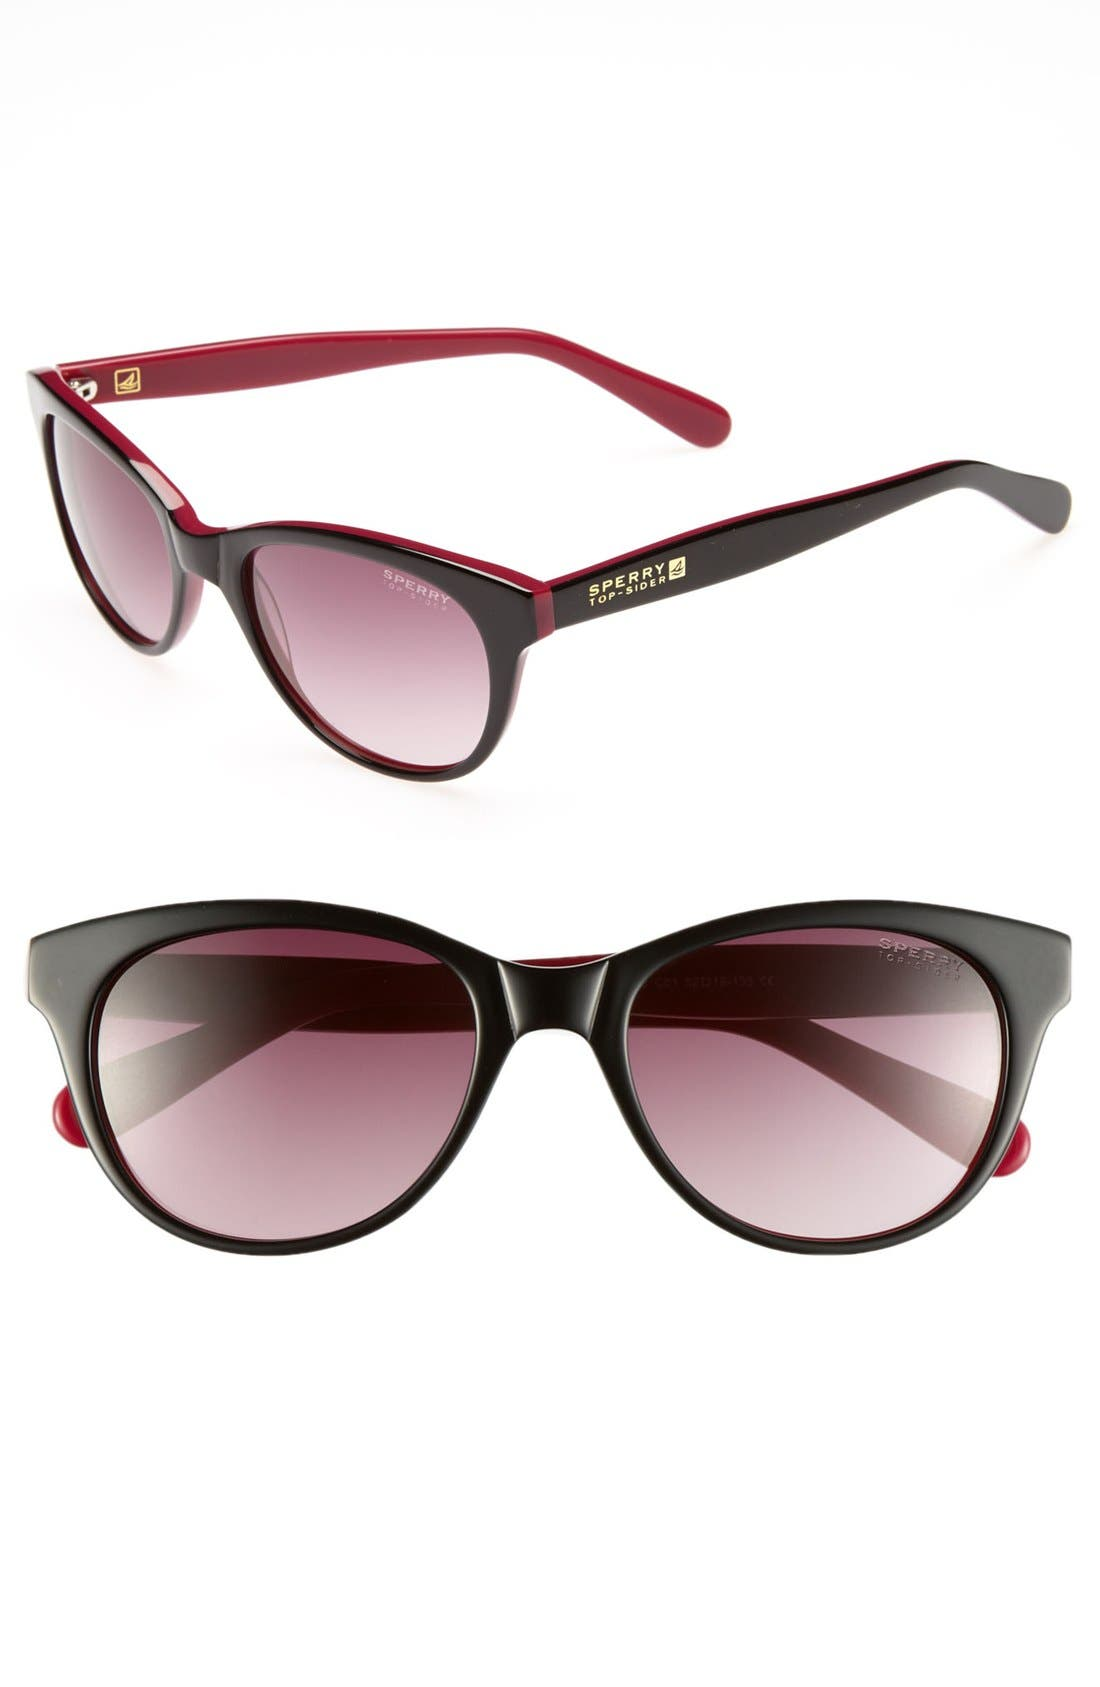 Alternate Image 1 Selected - Sperry Top-Sider® 'Hatteras' 52mm Sunglasses (Online Only)